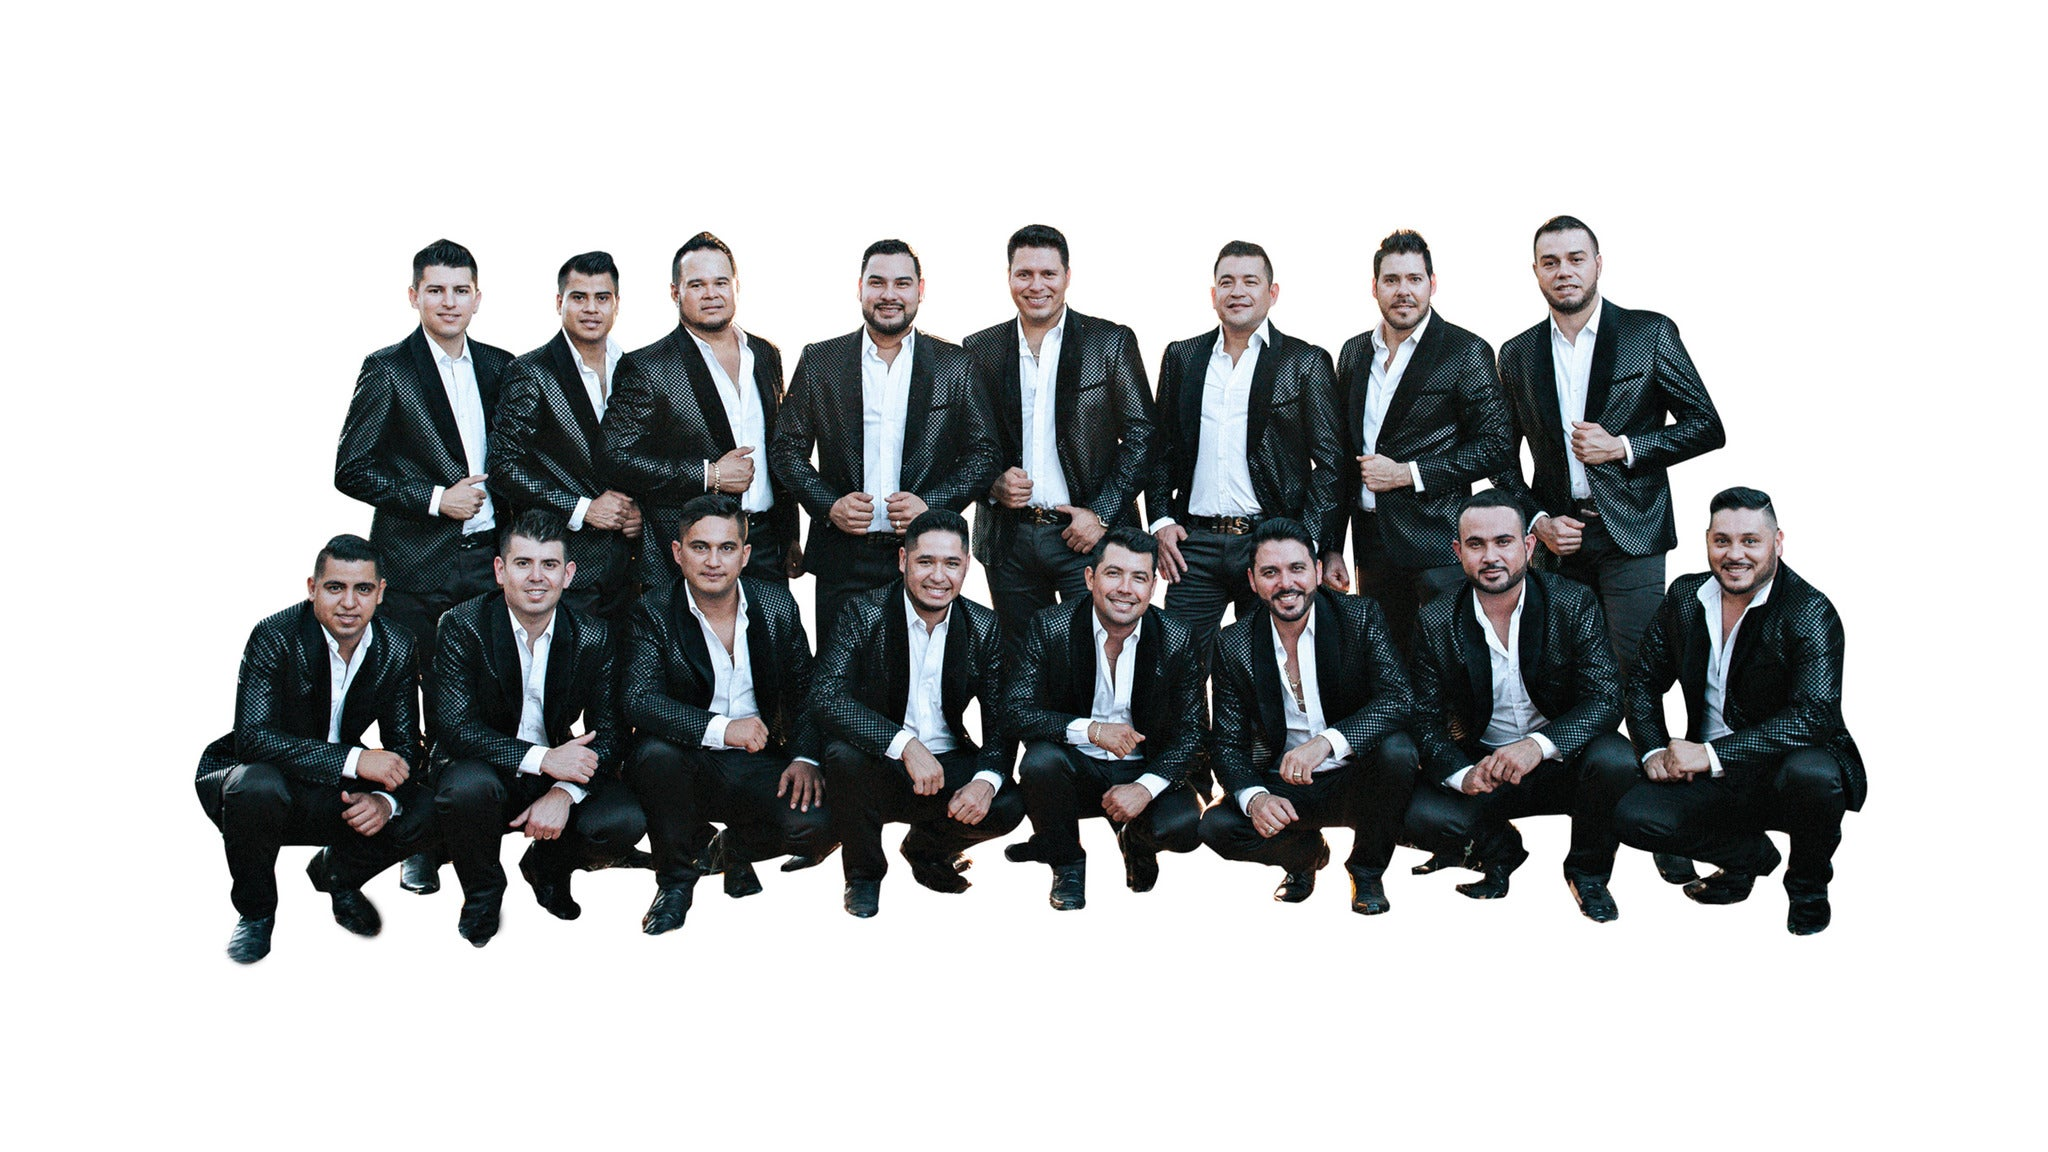 Banda MS de Sergio Lizarraga at Oracle Arena